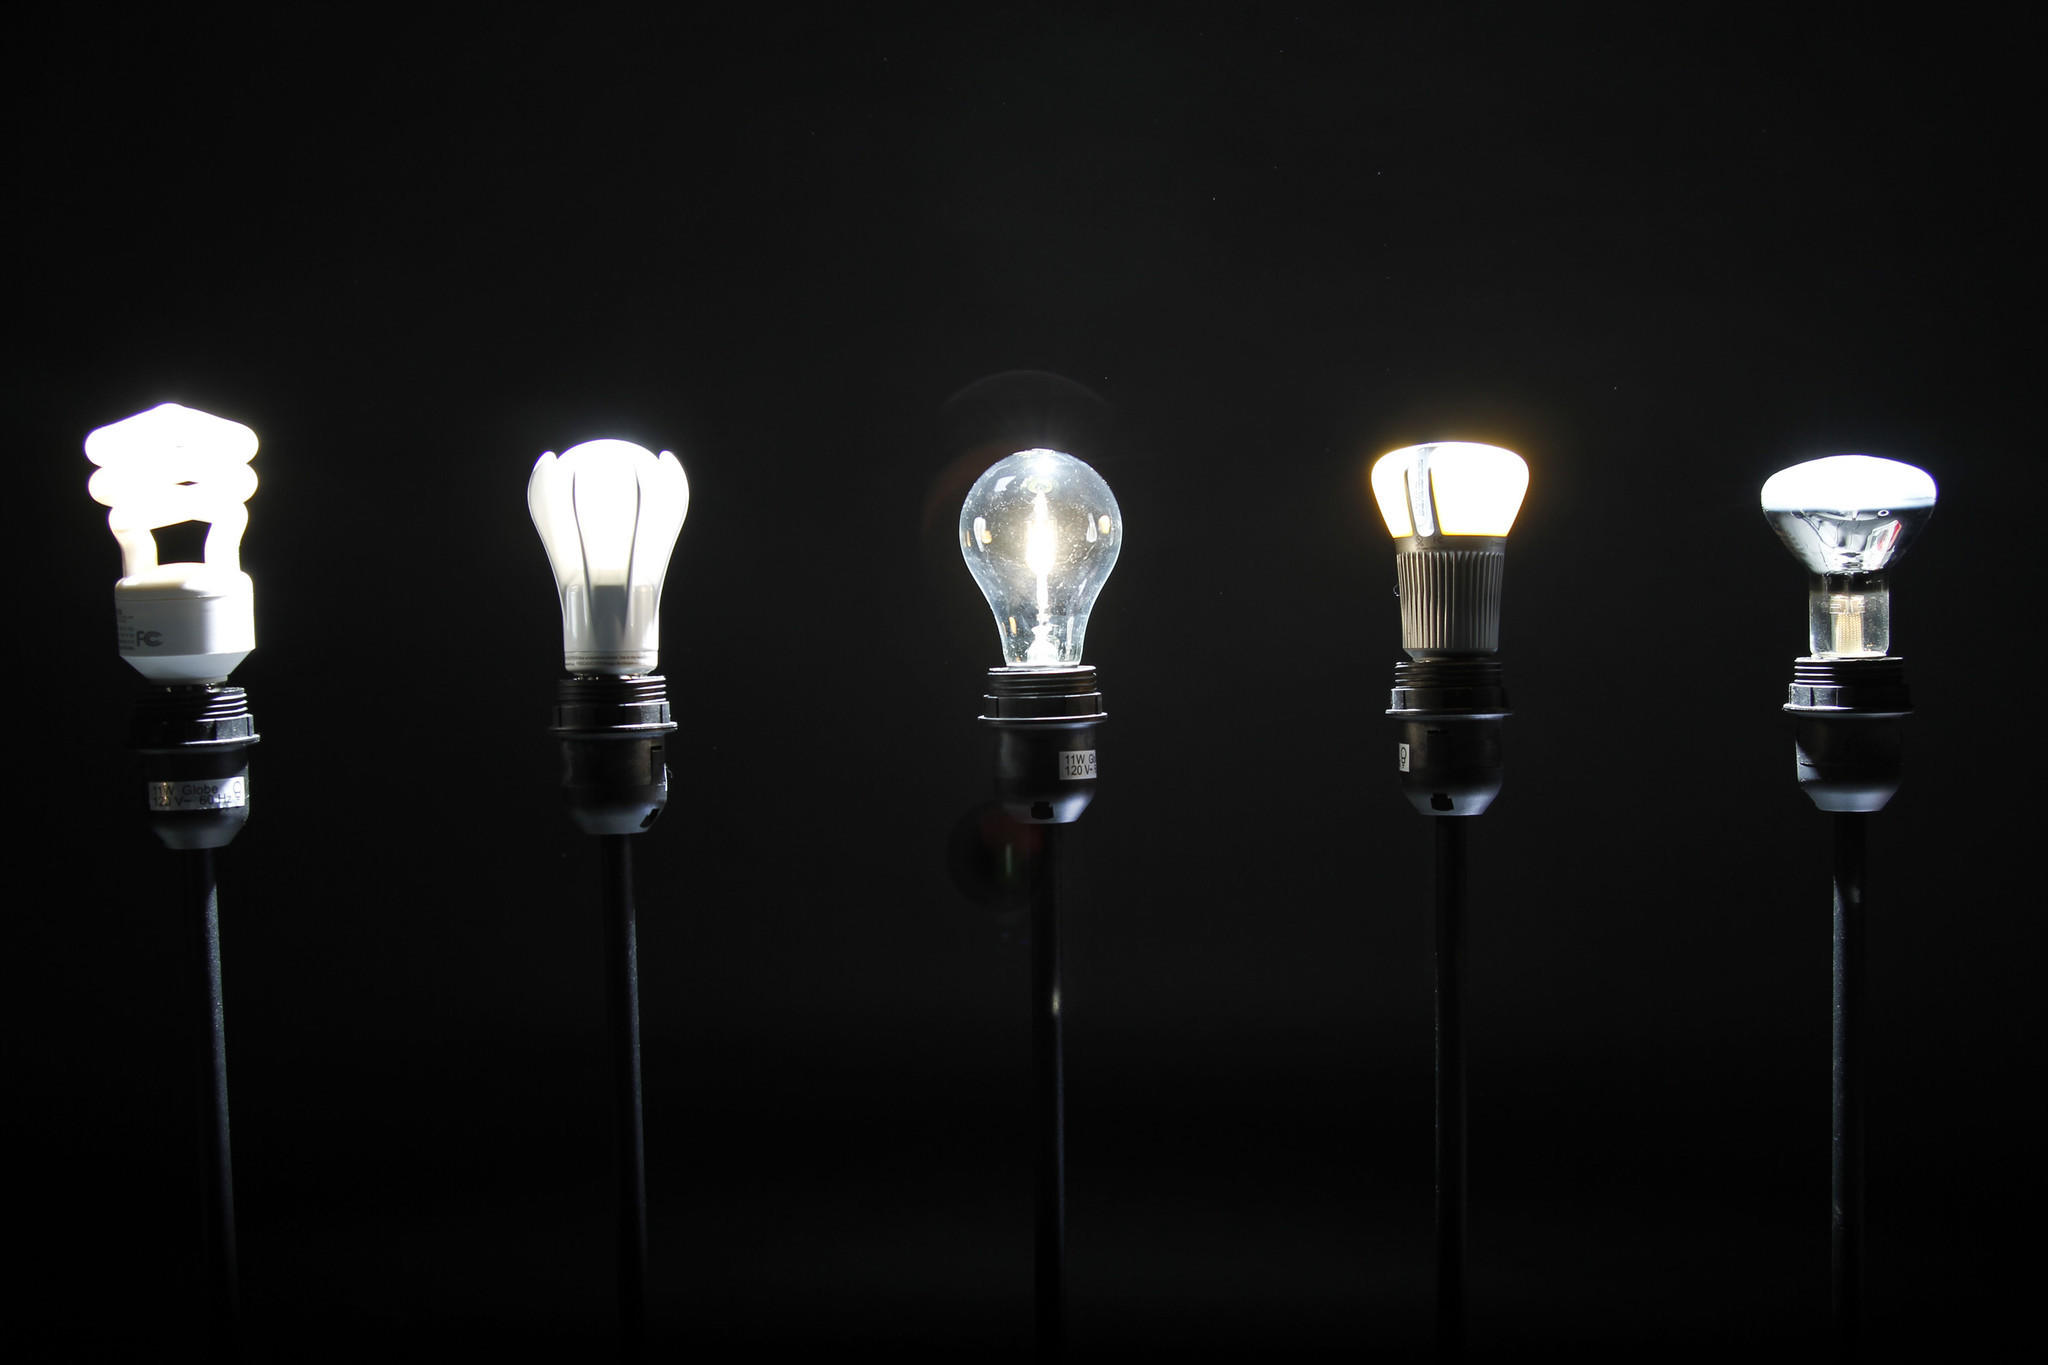 Last Of Incandescent Light Bulbs Are Banned Latimes